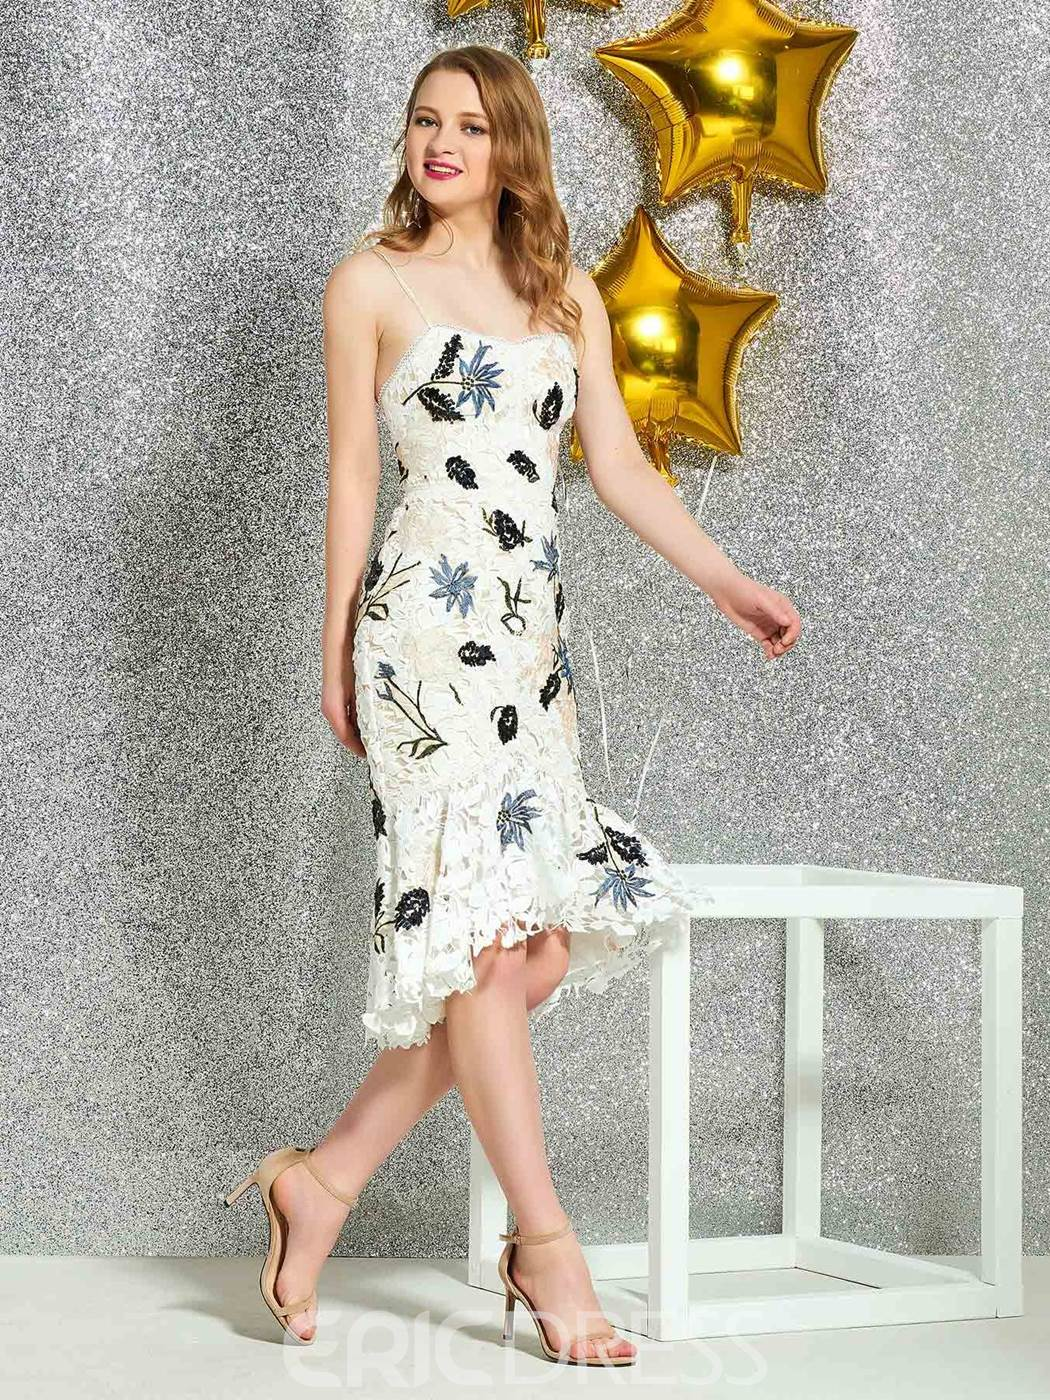 Ericdress Appliques Spaghetti Straps Lace Cocktail Dress 2019